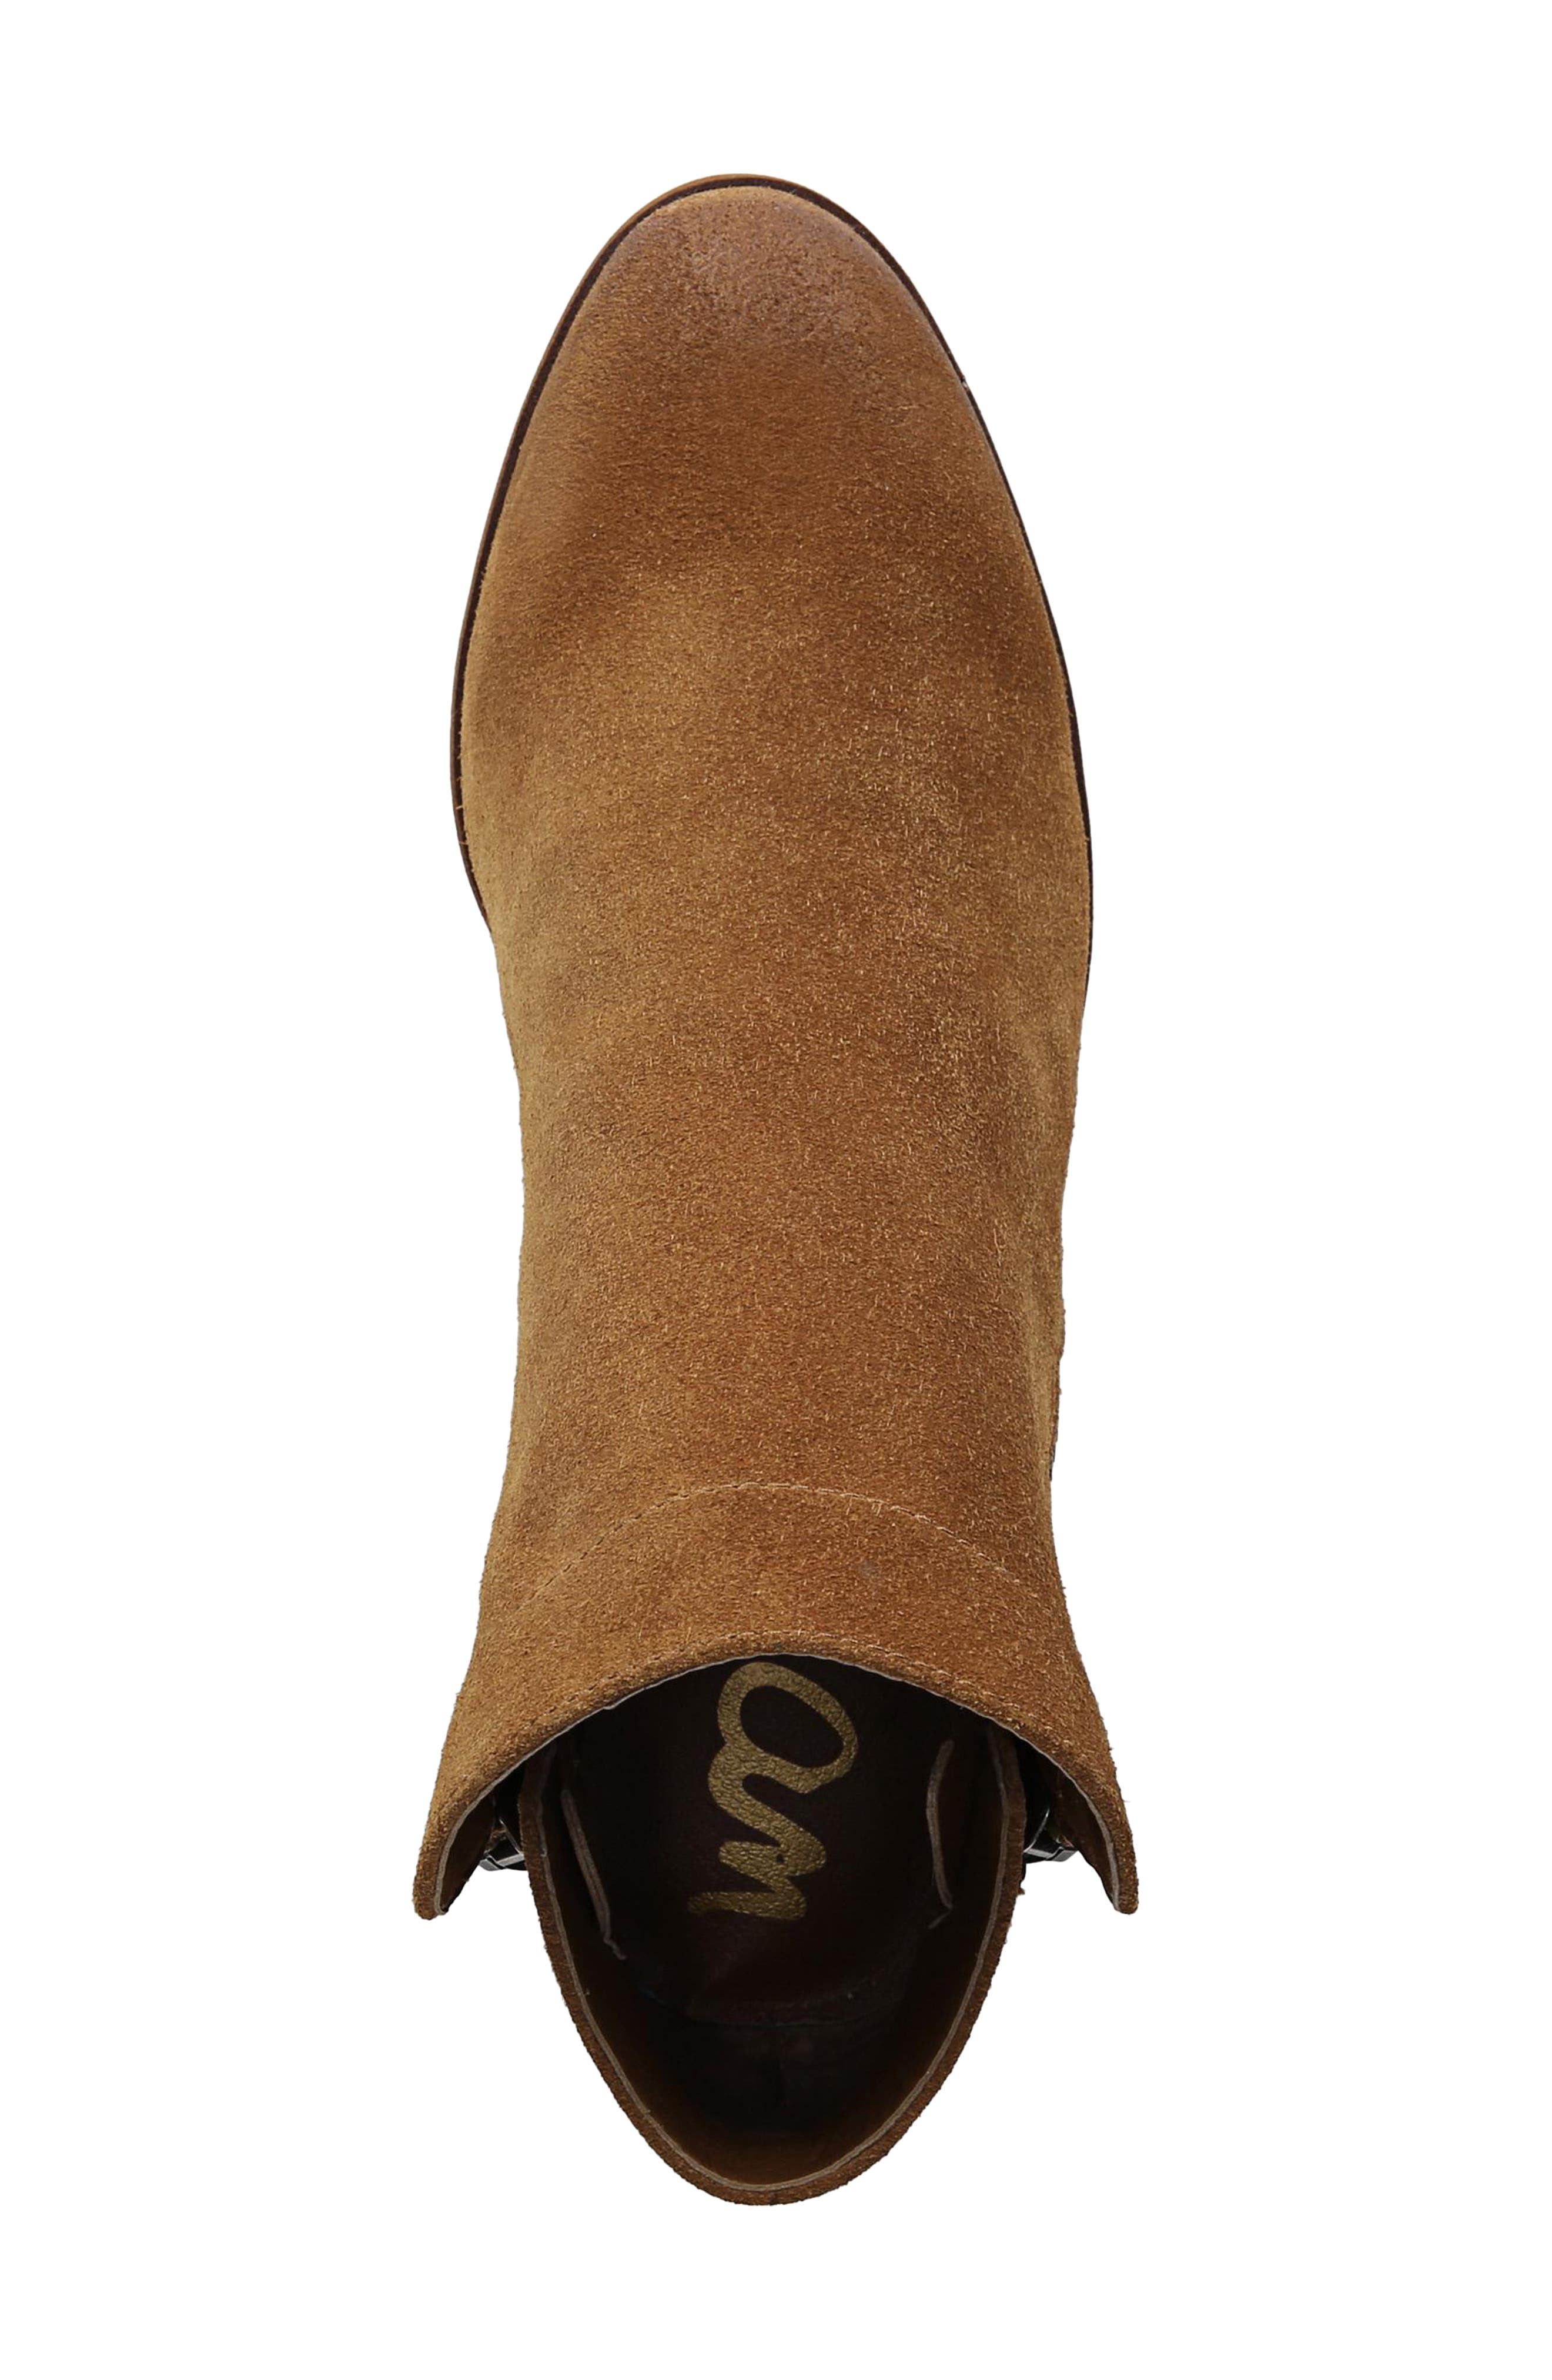 Packer Bootie,                             Alternate thumbnail 5, color,                             LUGGAGE SUEDE LEATHER